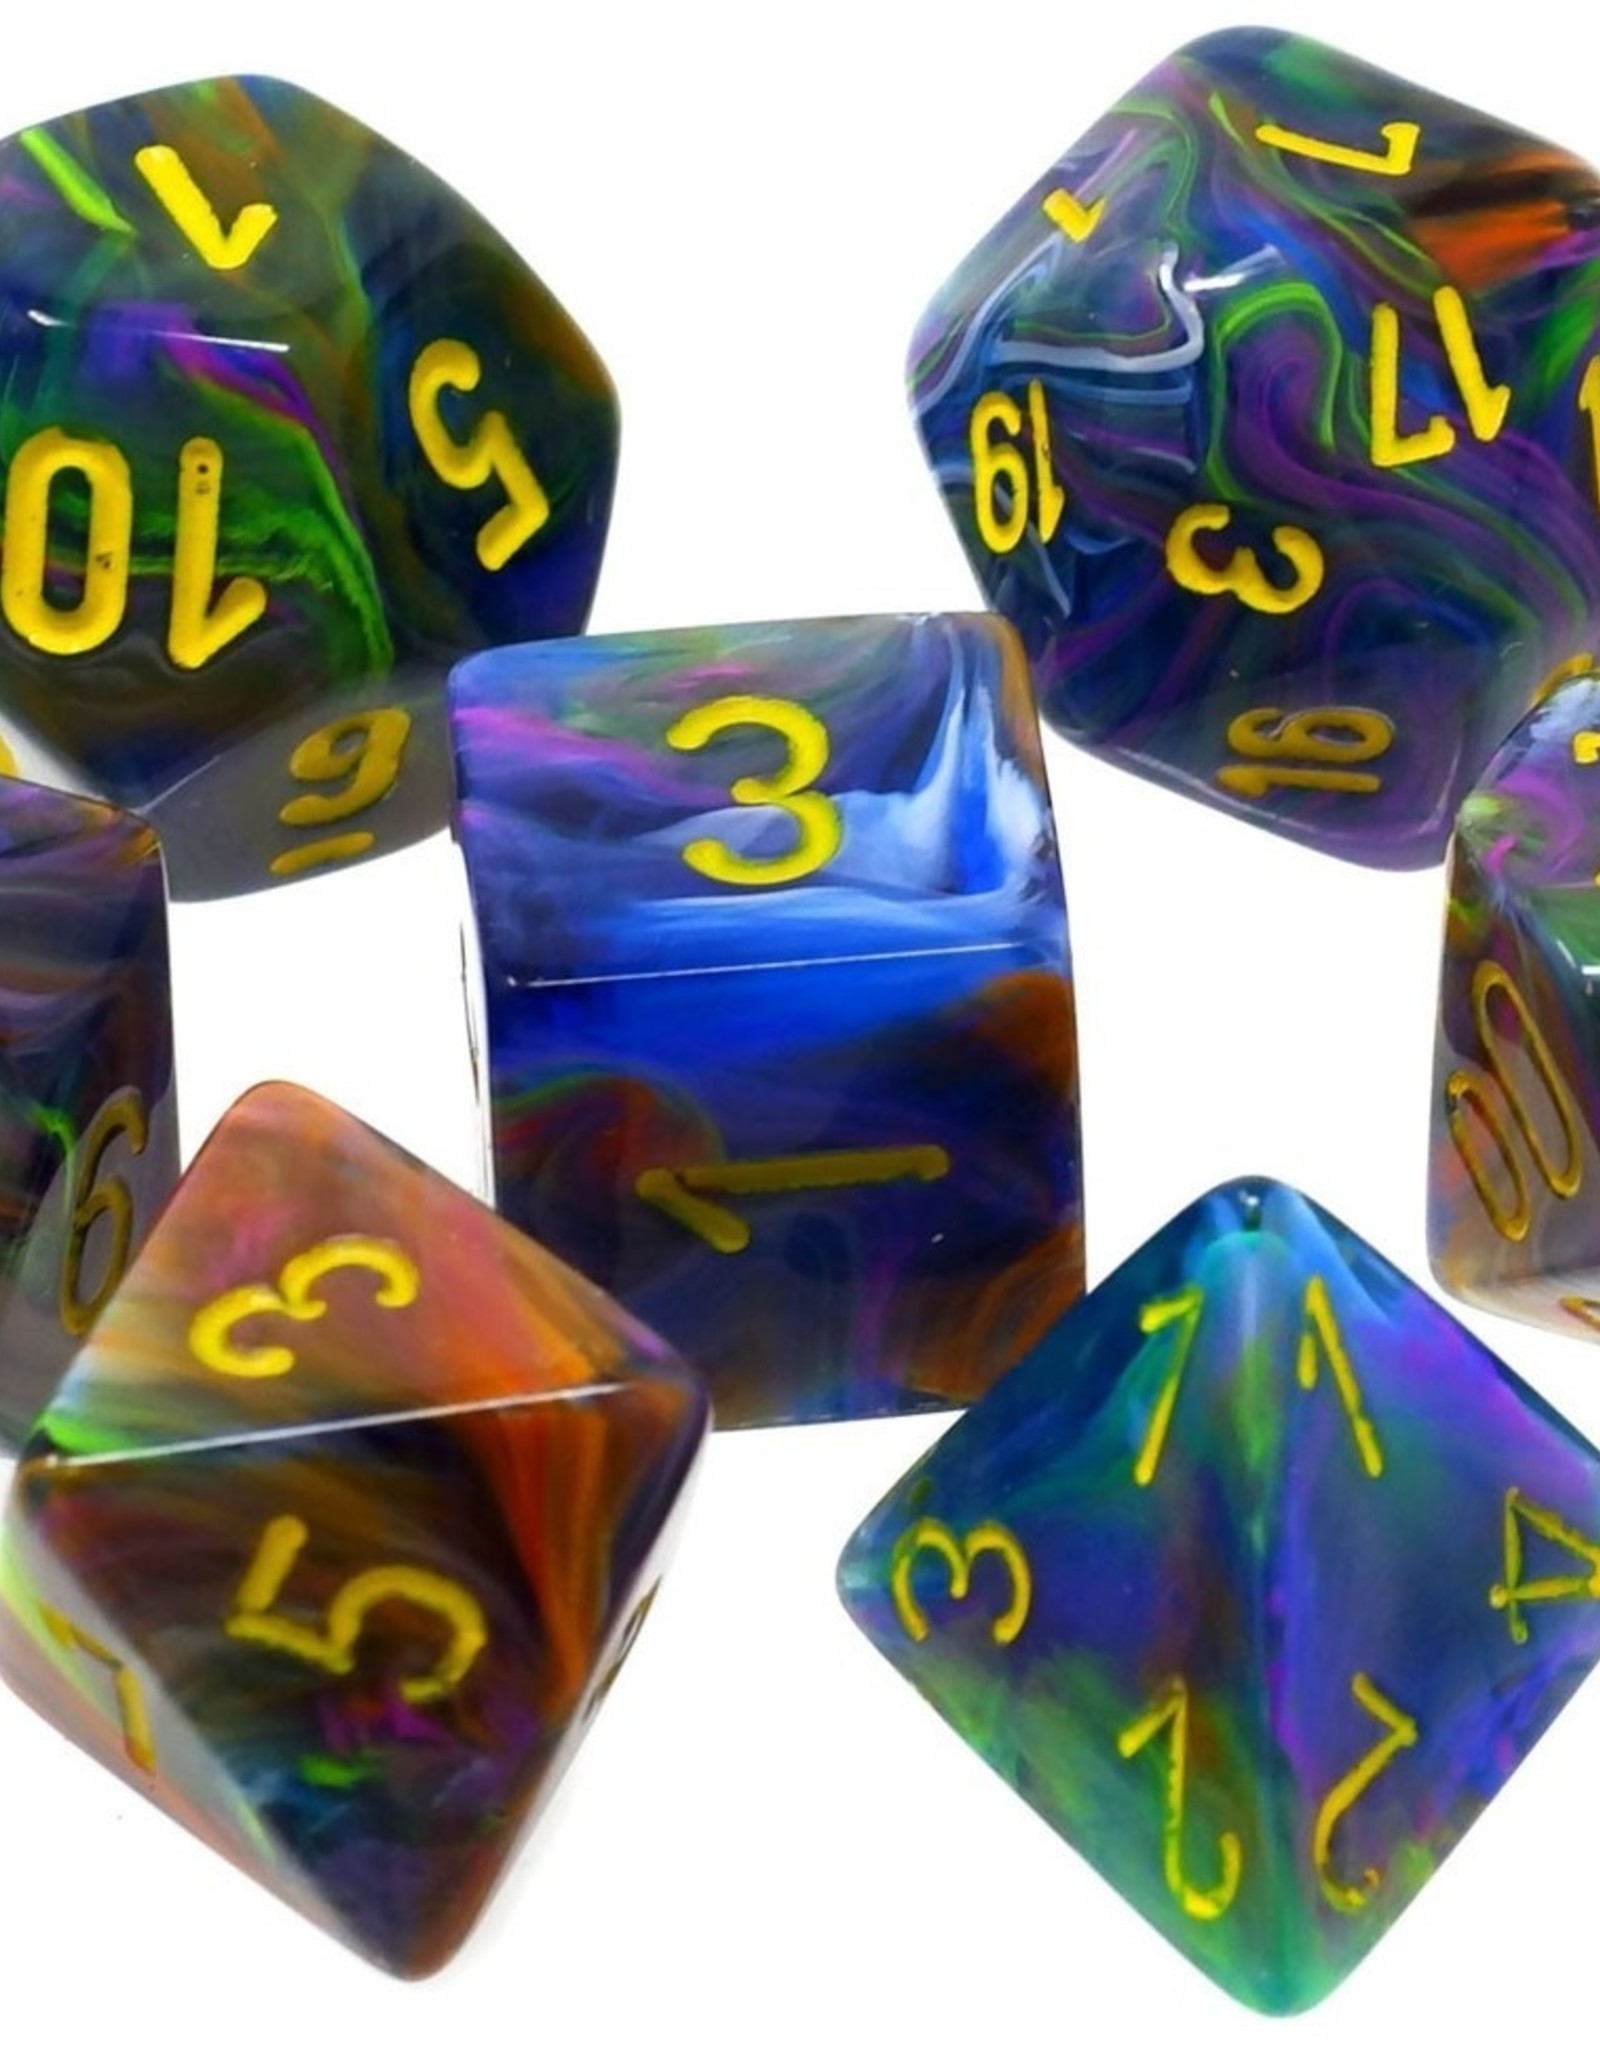 Chessex Chessex 7-Die set Festive - Rio/Yellow